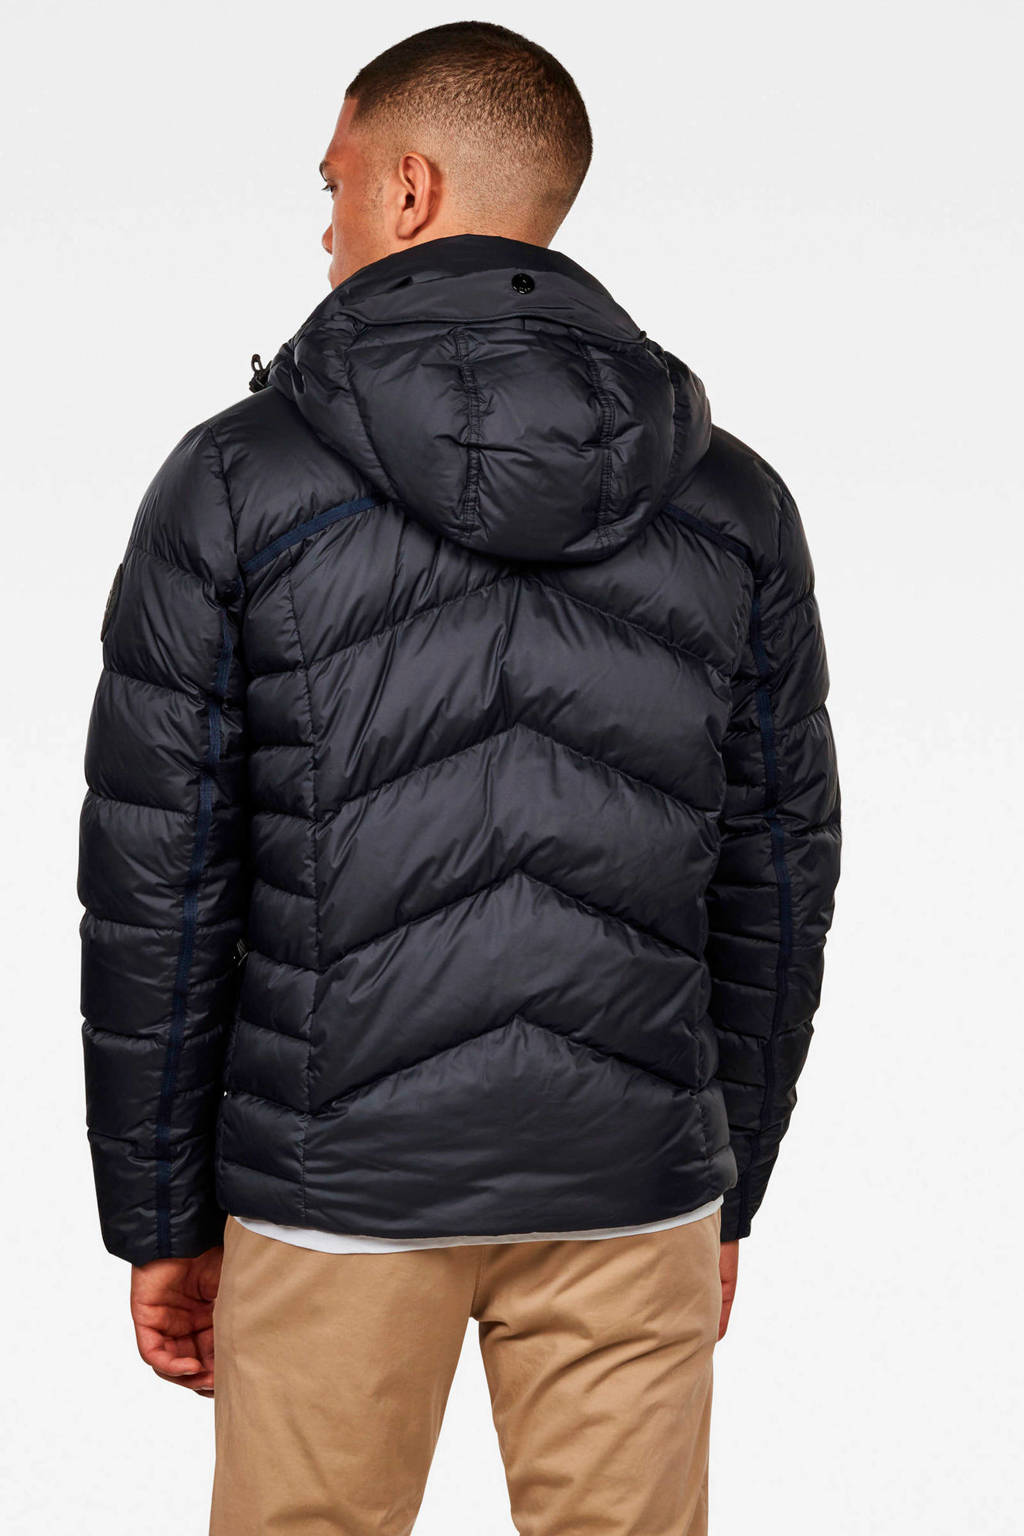 G-Star RAW winterjas marine, Marine